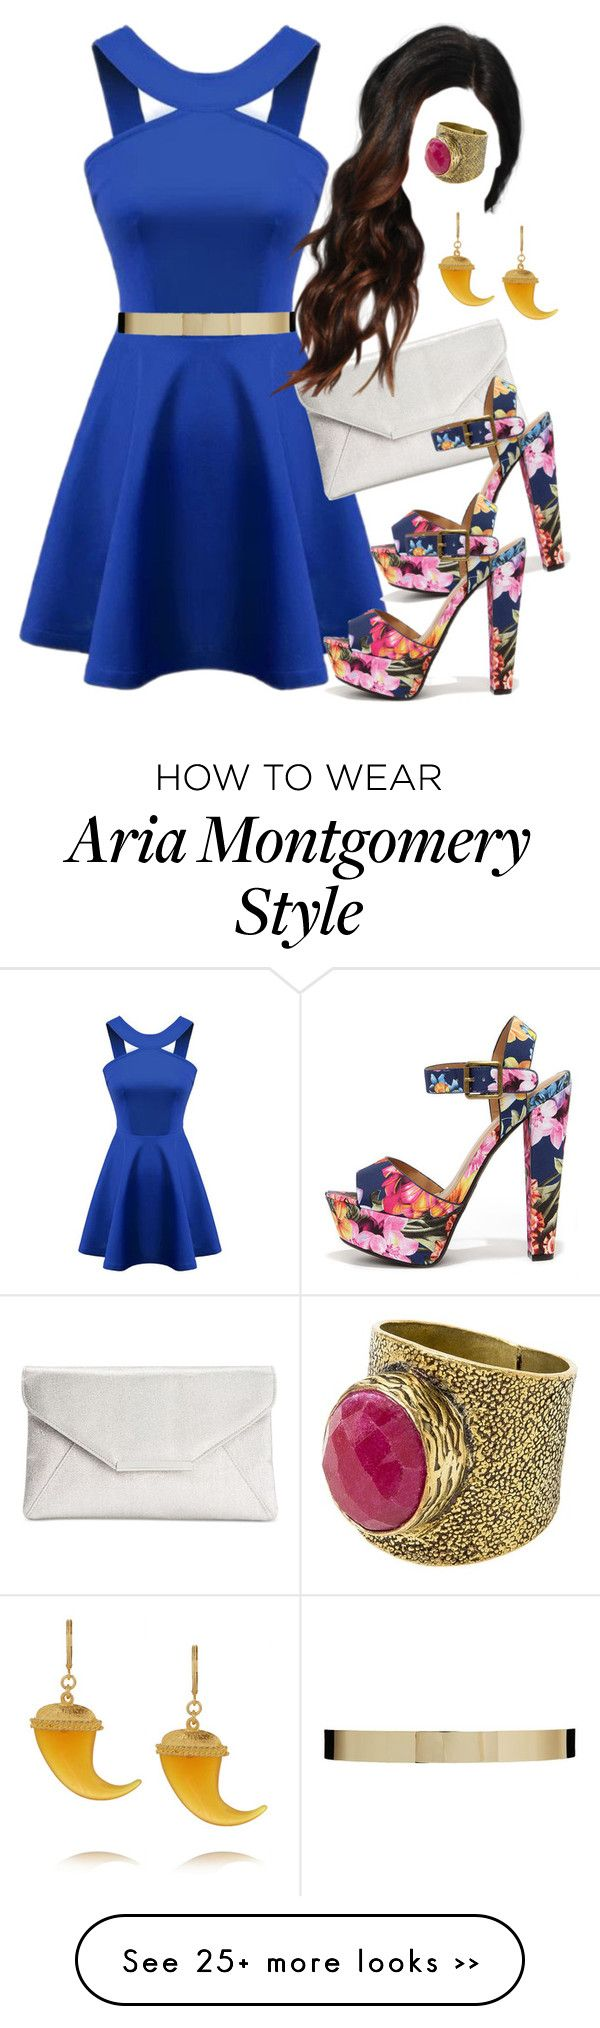 """""""Aria Montgomery inspired outfit"""" by liarsstyle on Polyvore"""